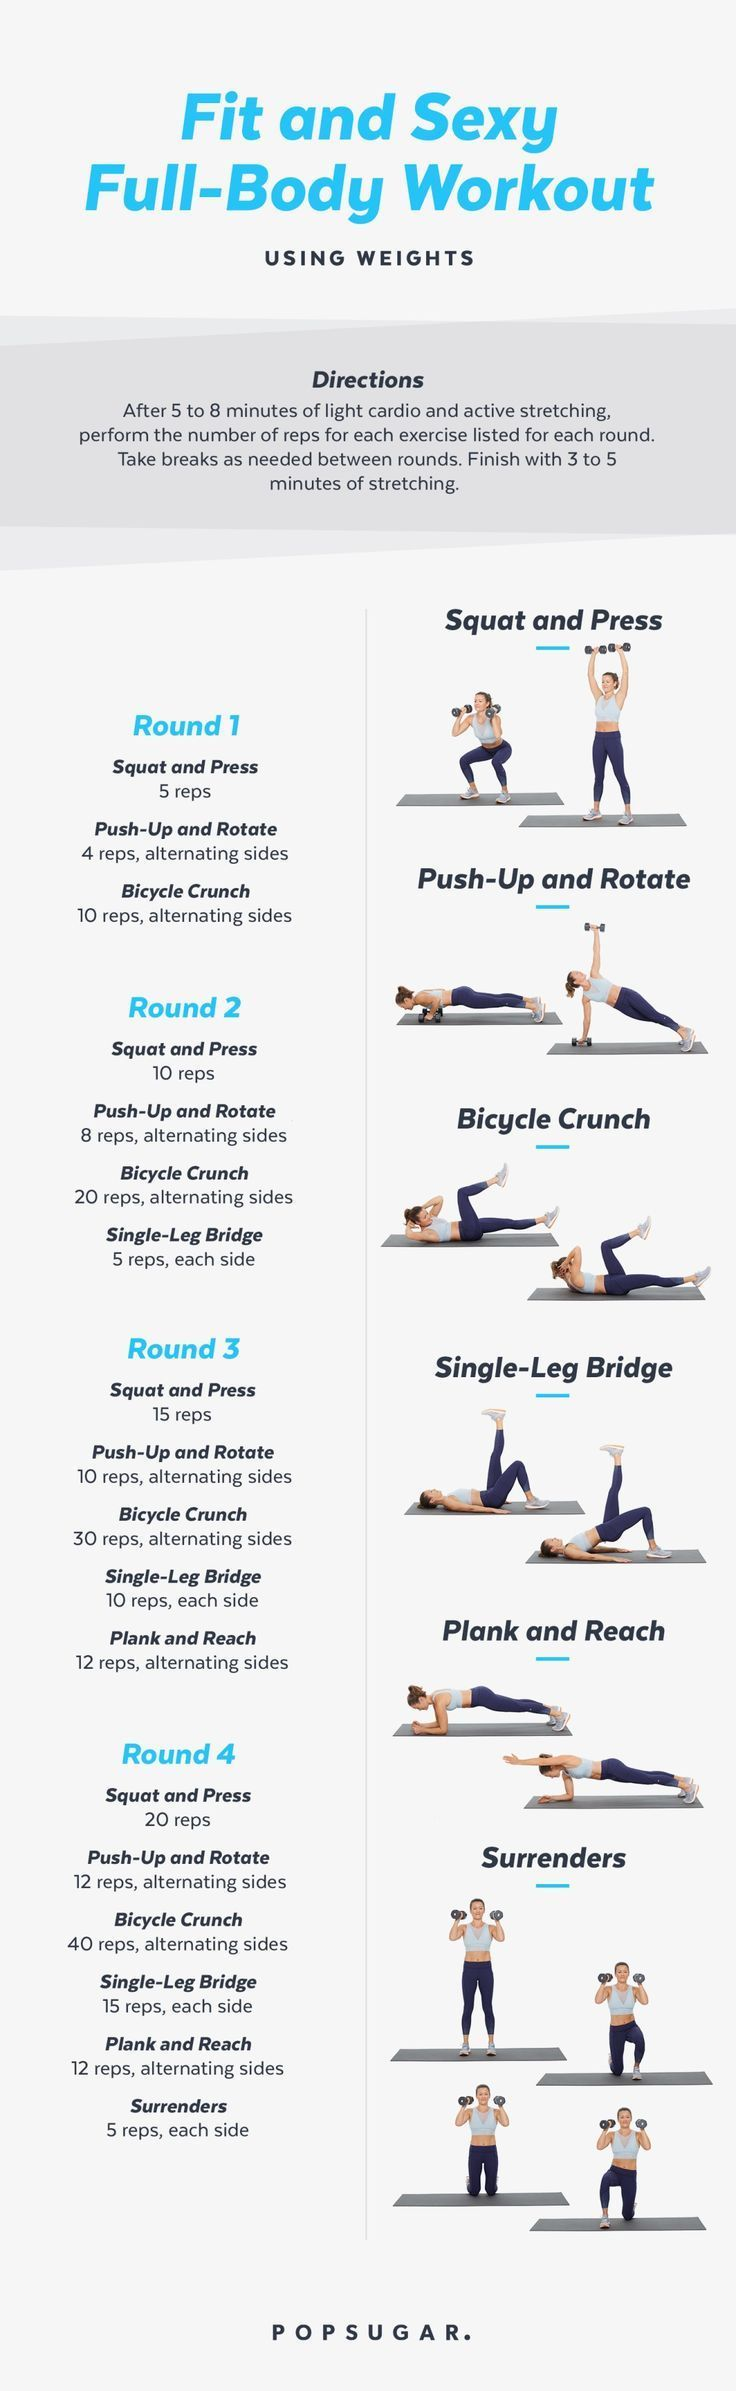 Grab some weight for this muscle-building, metabolism-boosting workout. We work your entire body with just 6 exercises.